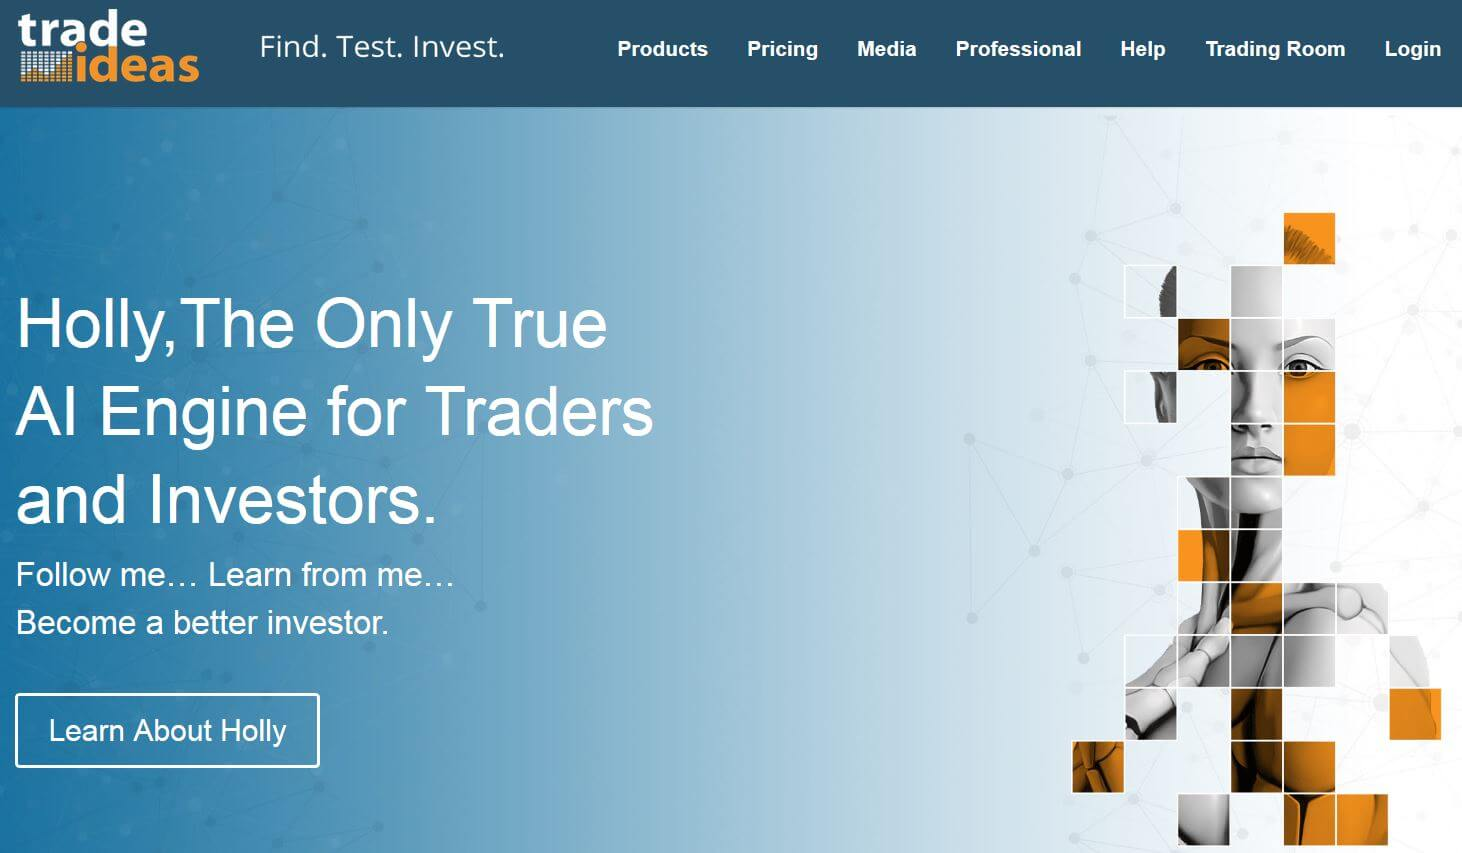 Trade Ideas Stock Chat Room